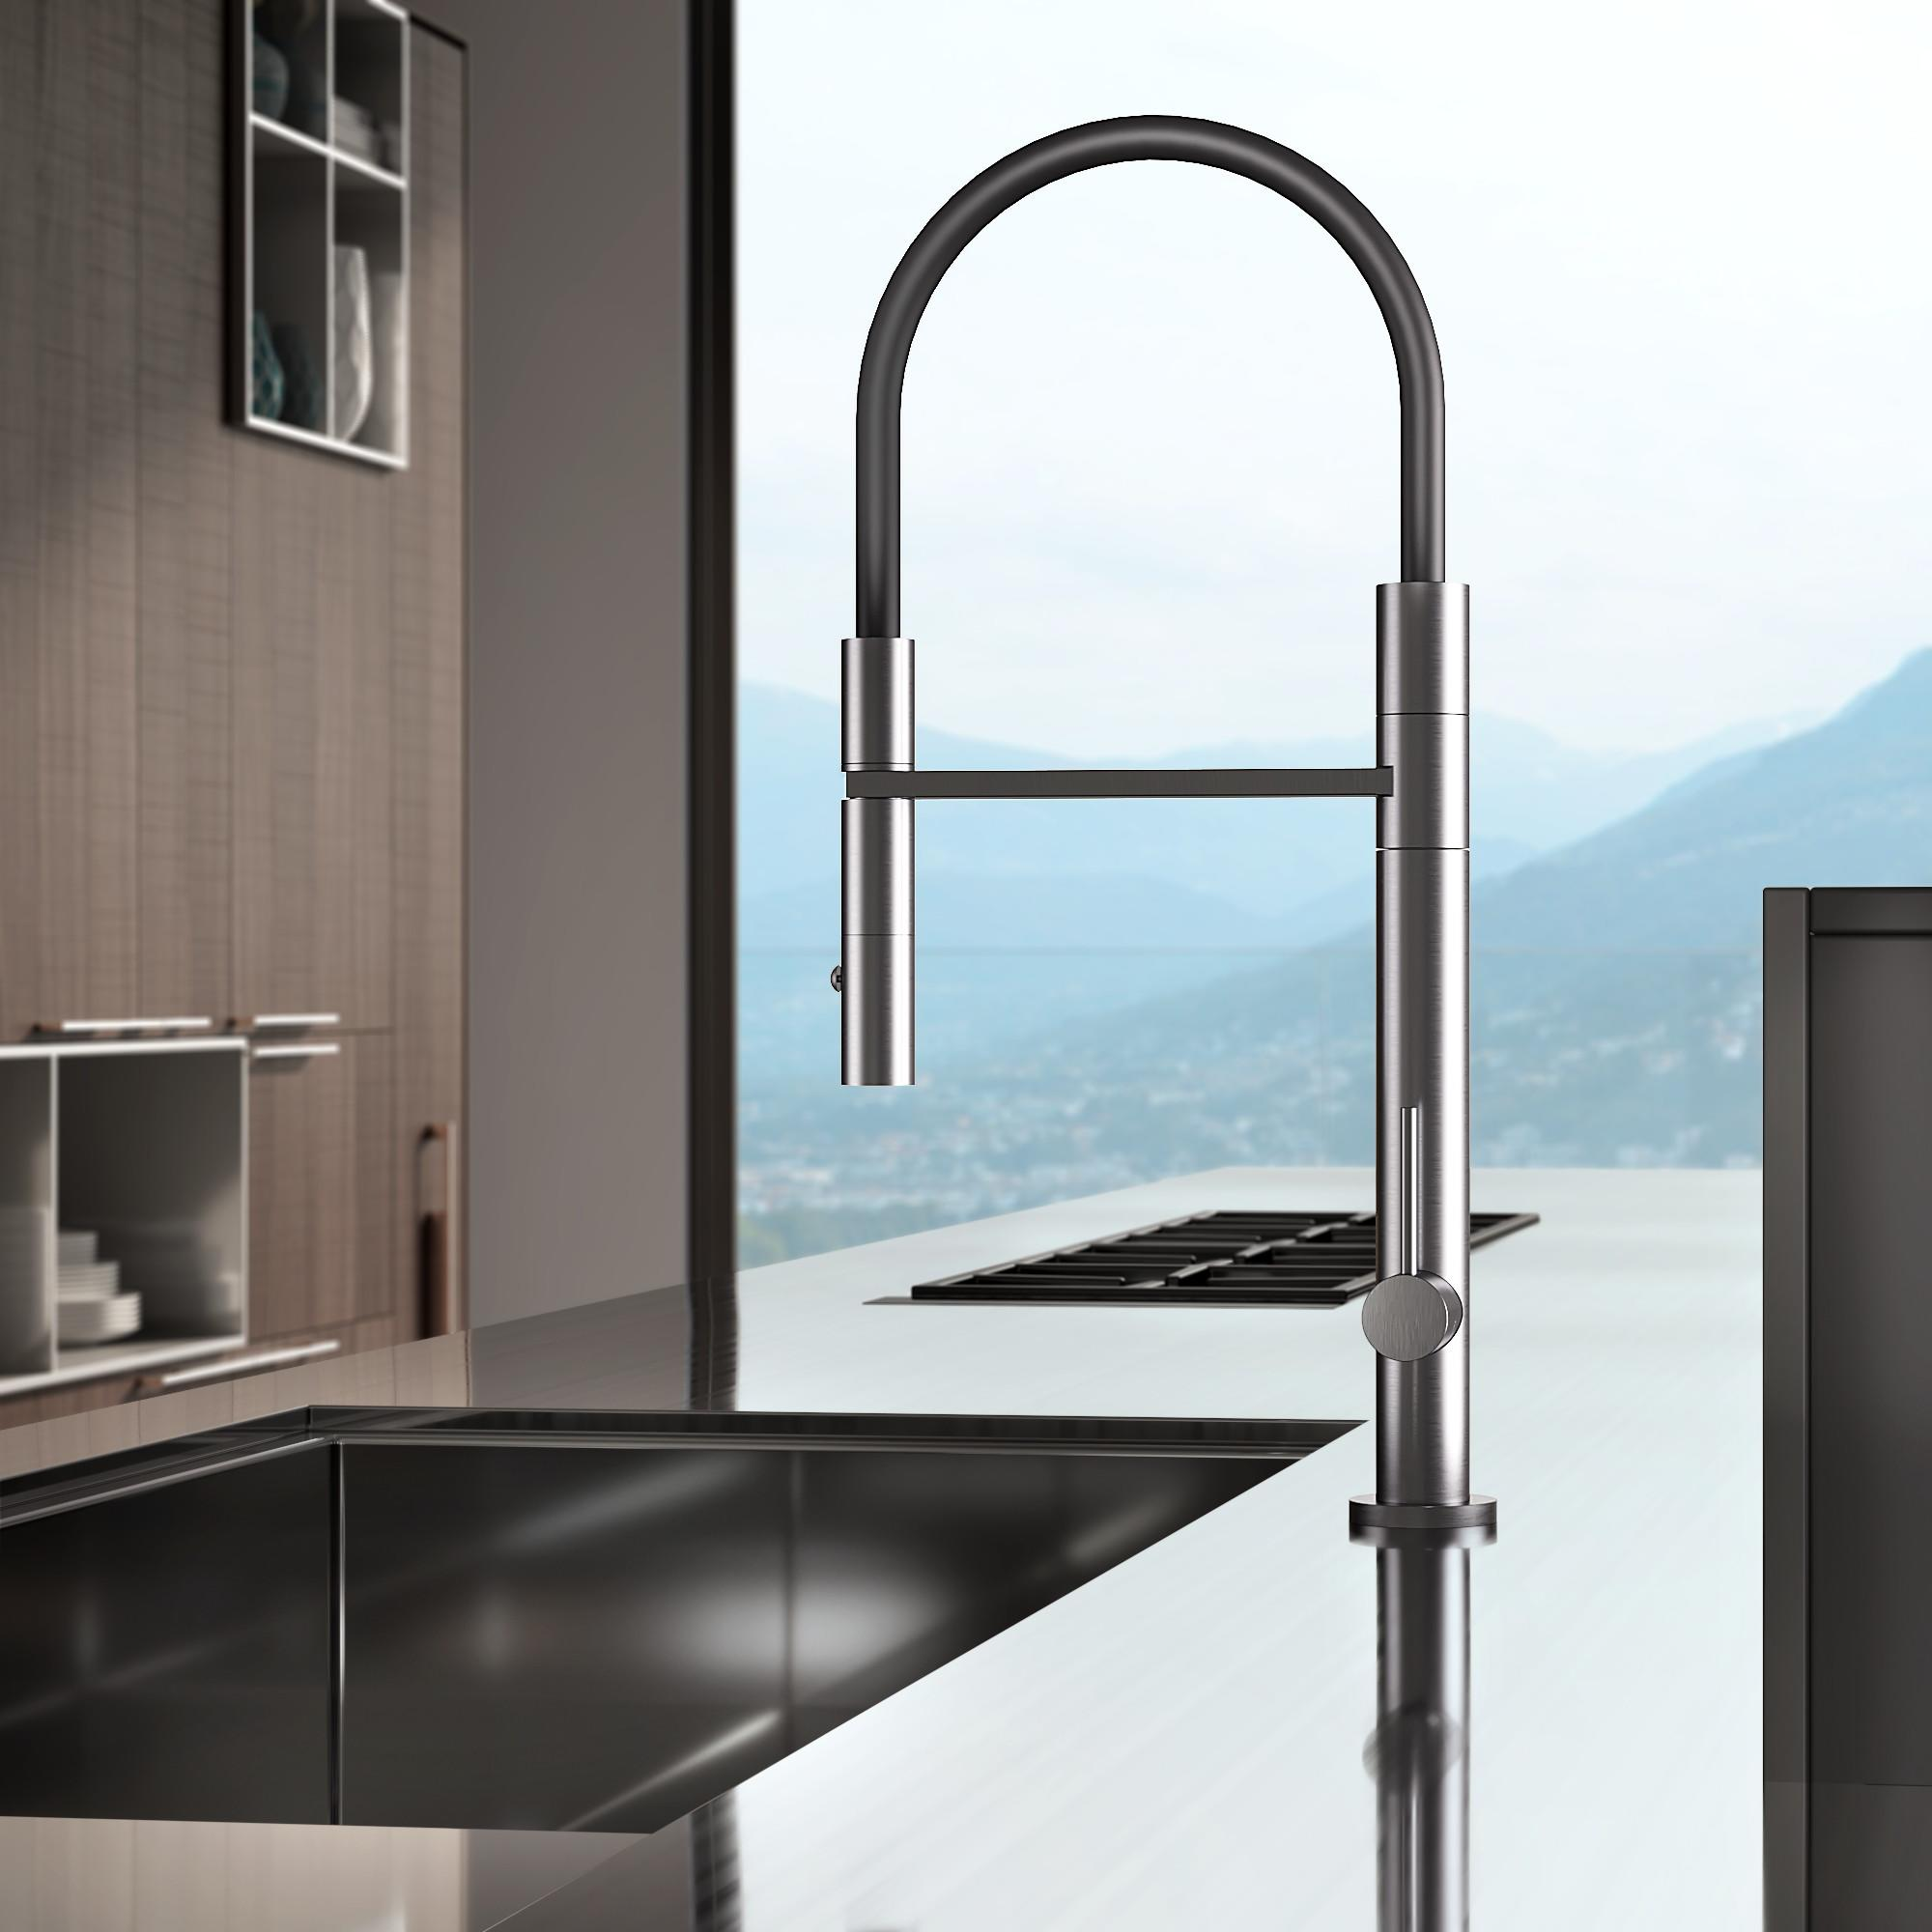 stainless_steel_outdoor_kitchen_tap_316_marine_grade_sink_rinser_spray